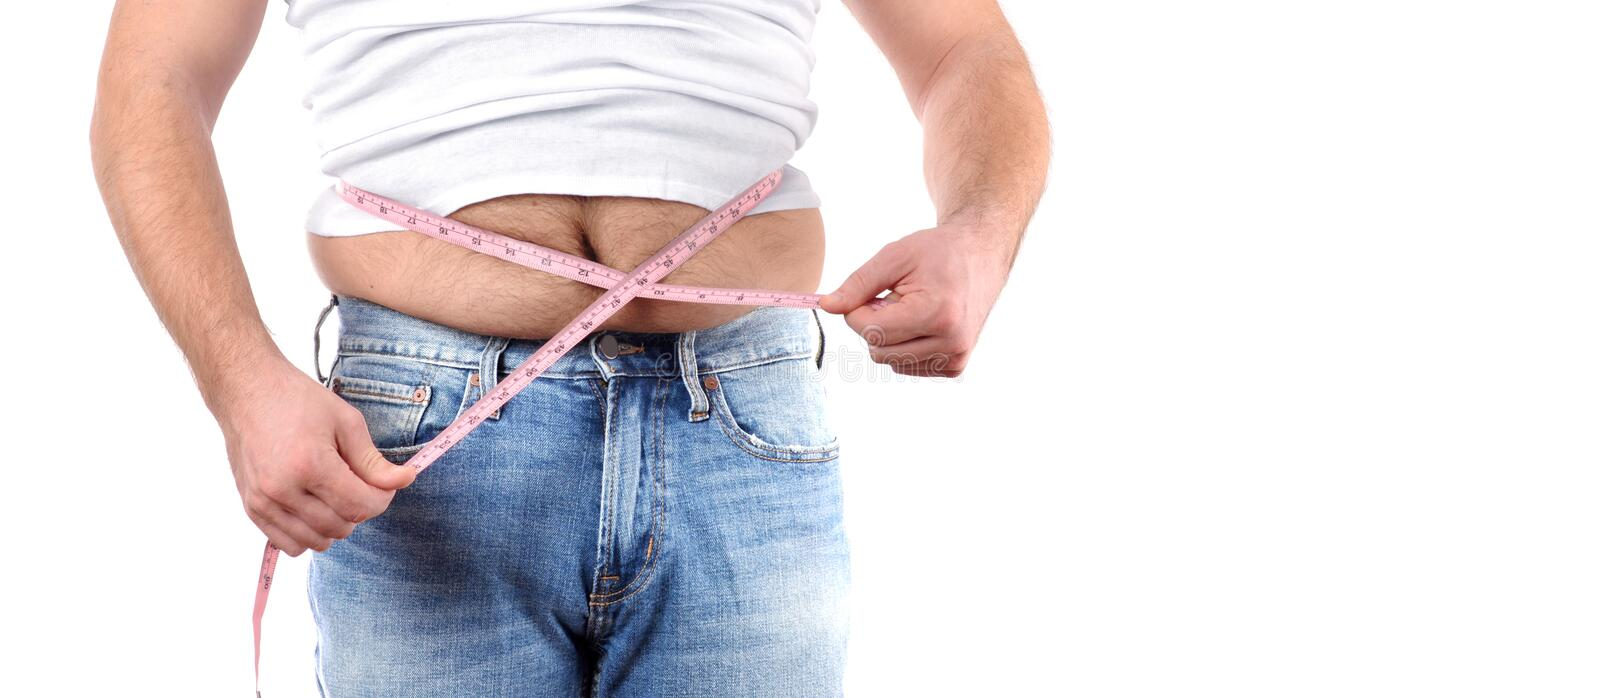 Overweight man with tape measure around waist. Man fat belly in jeans. Overweight man with tape measure around waist royalty free stock photo